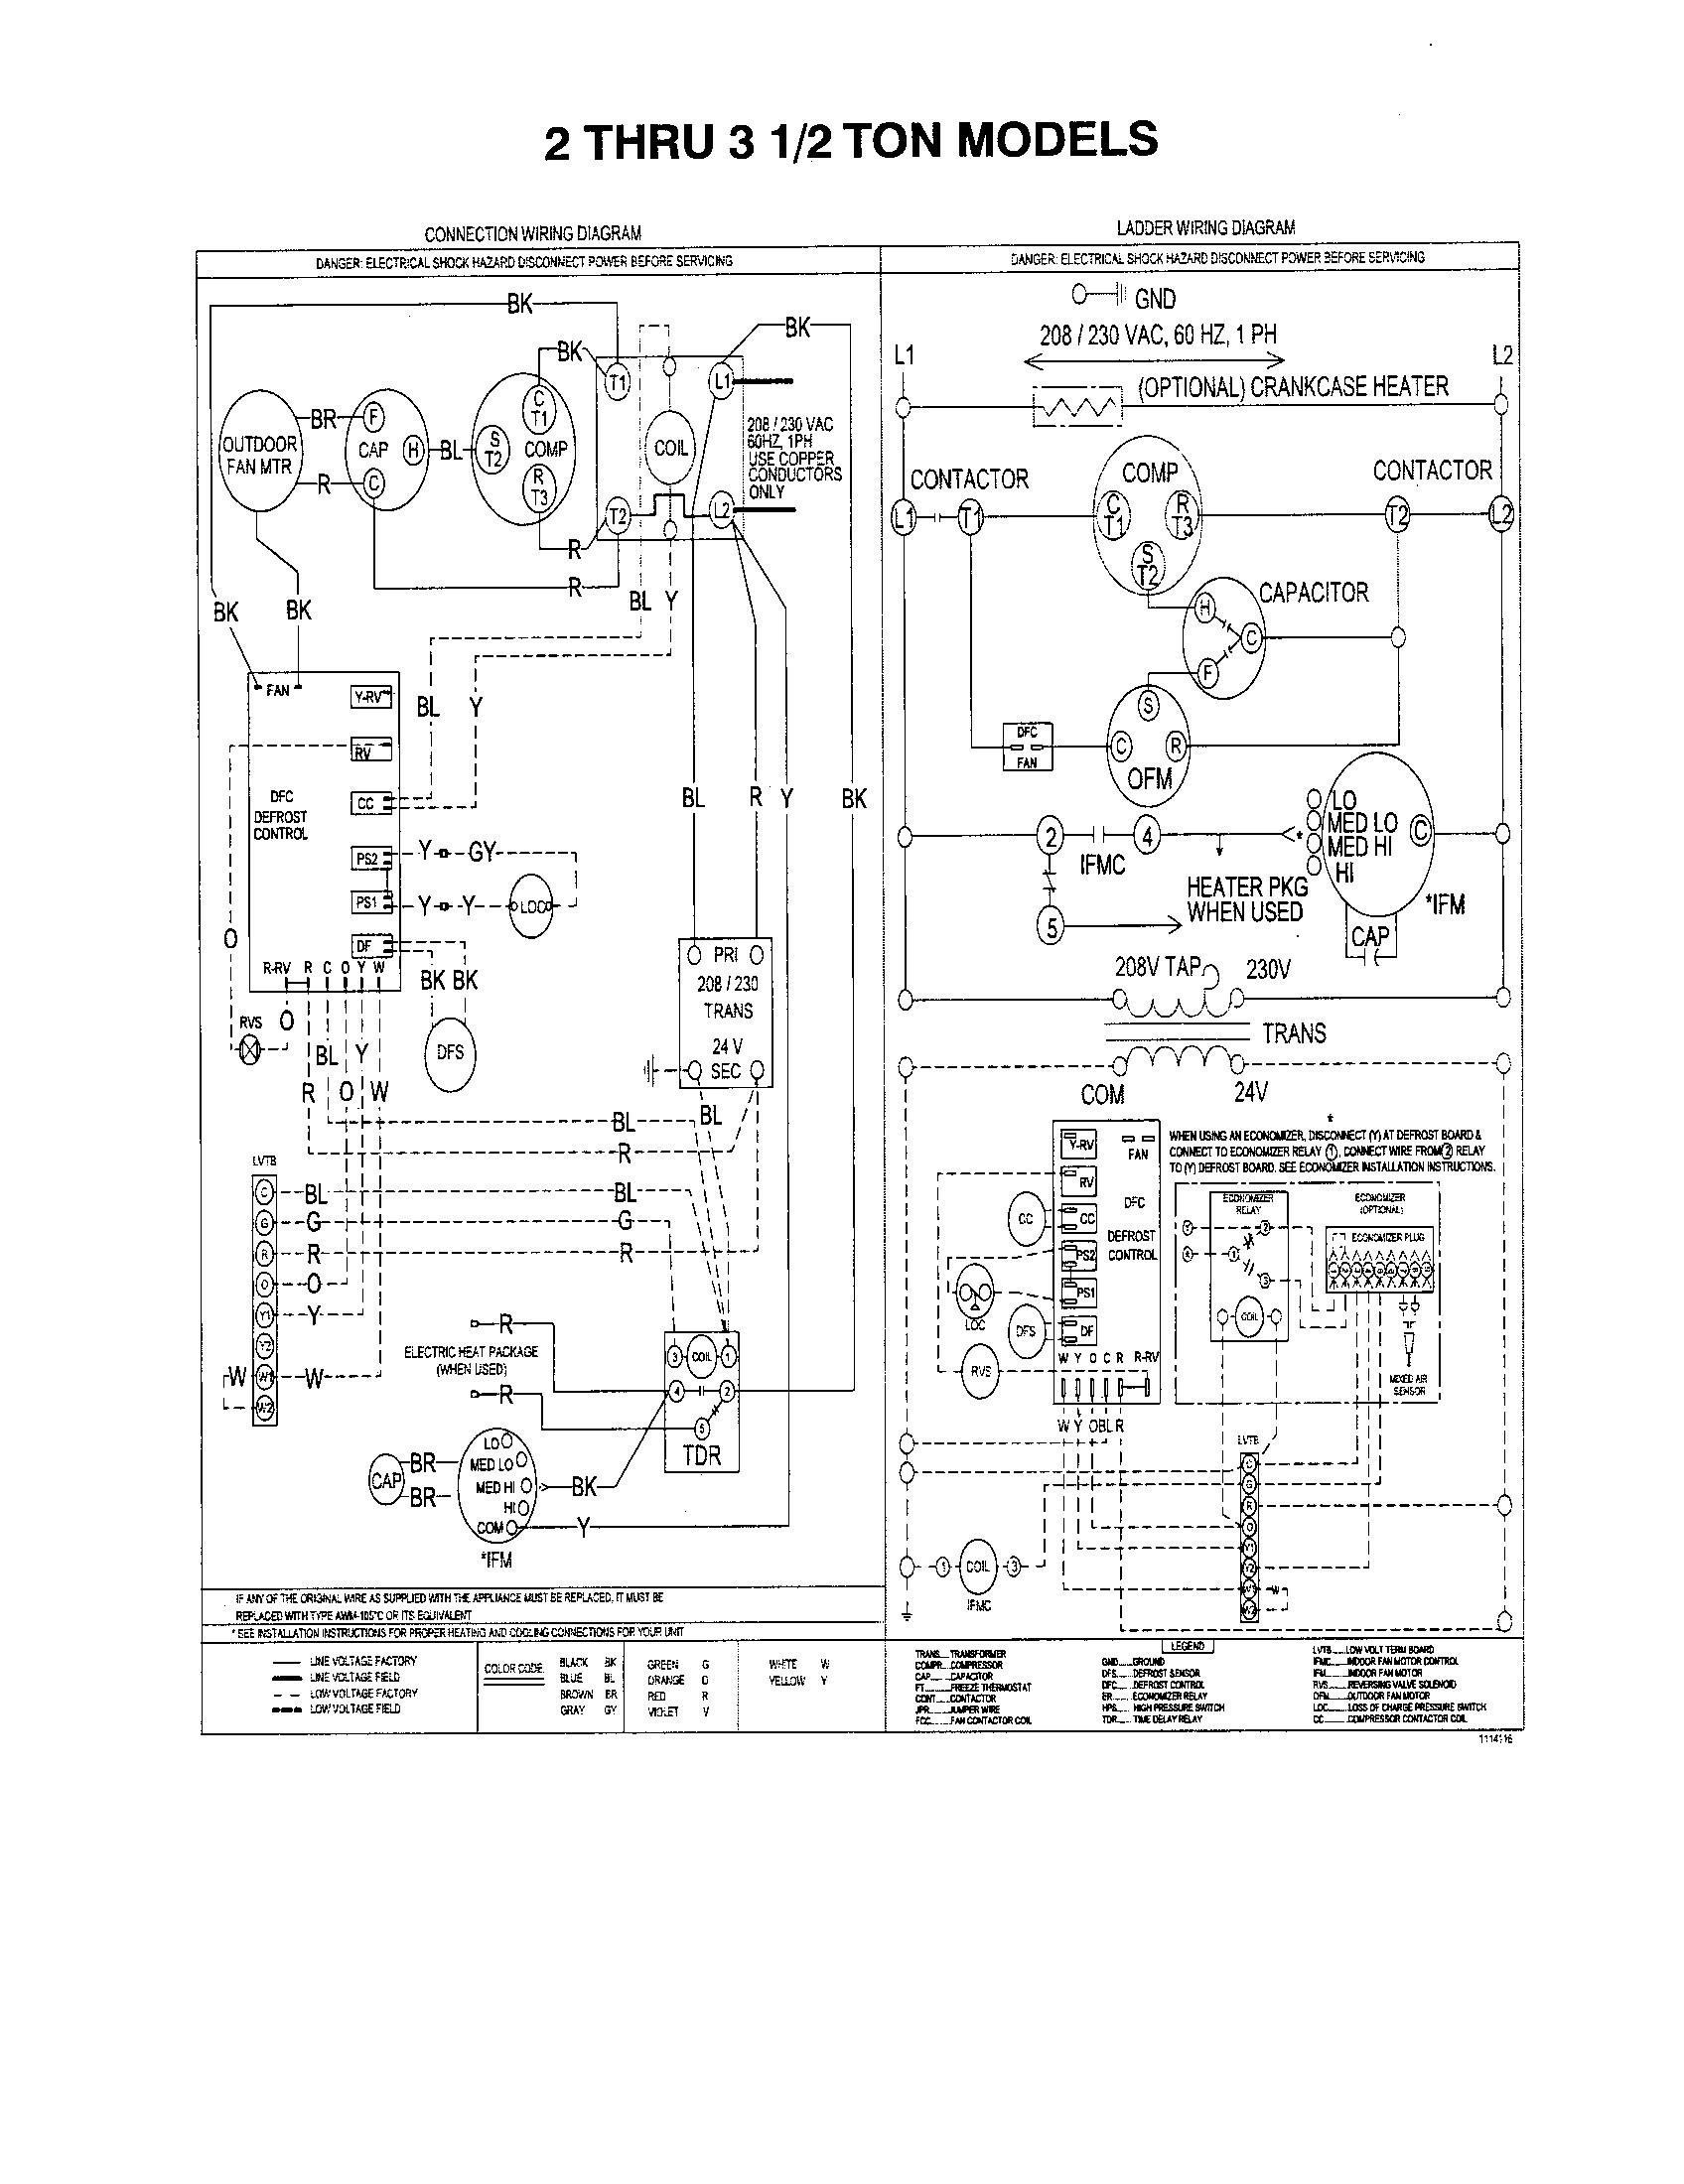 Trane Condensing Unit Wiring Diagram - Wiring Diagrams Blogpalox-france.fr